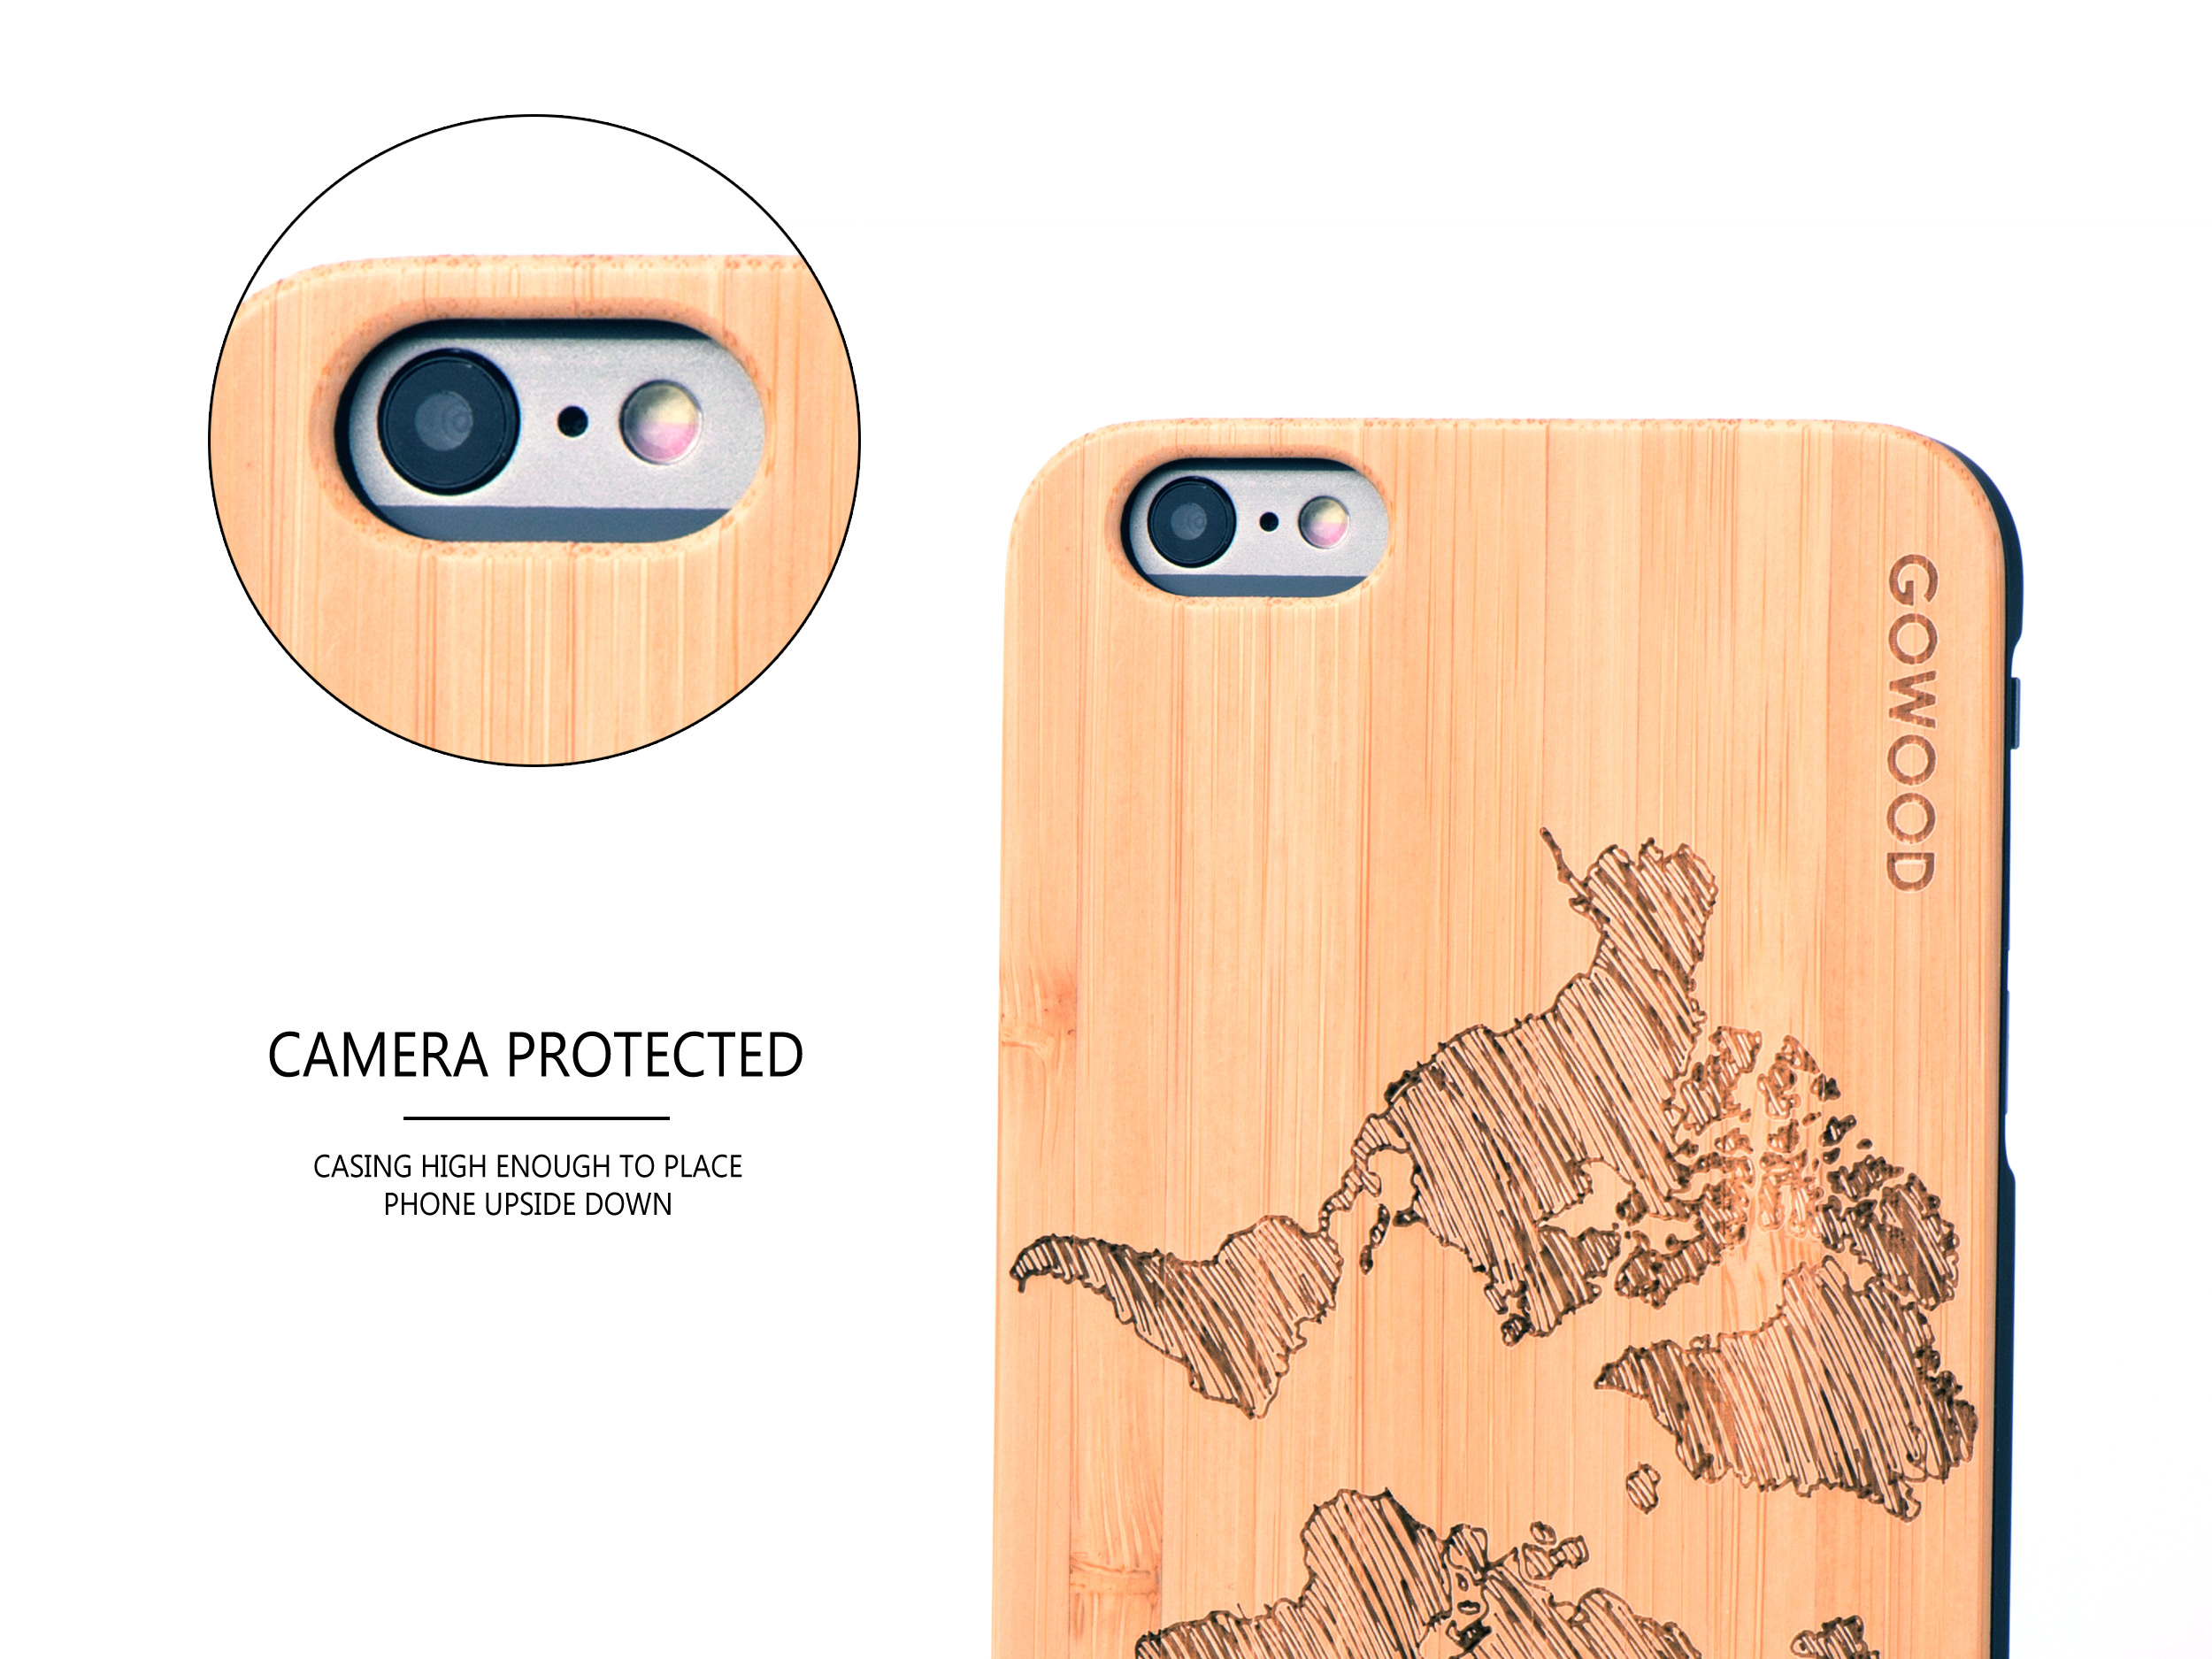 iPhone 6 Plus wood case map camera